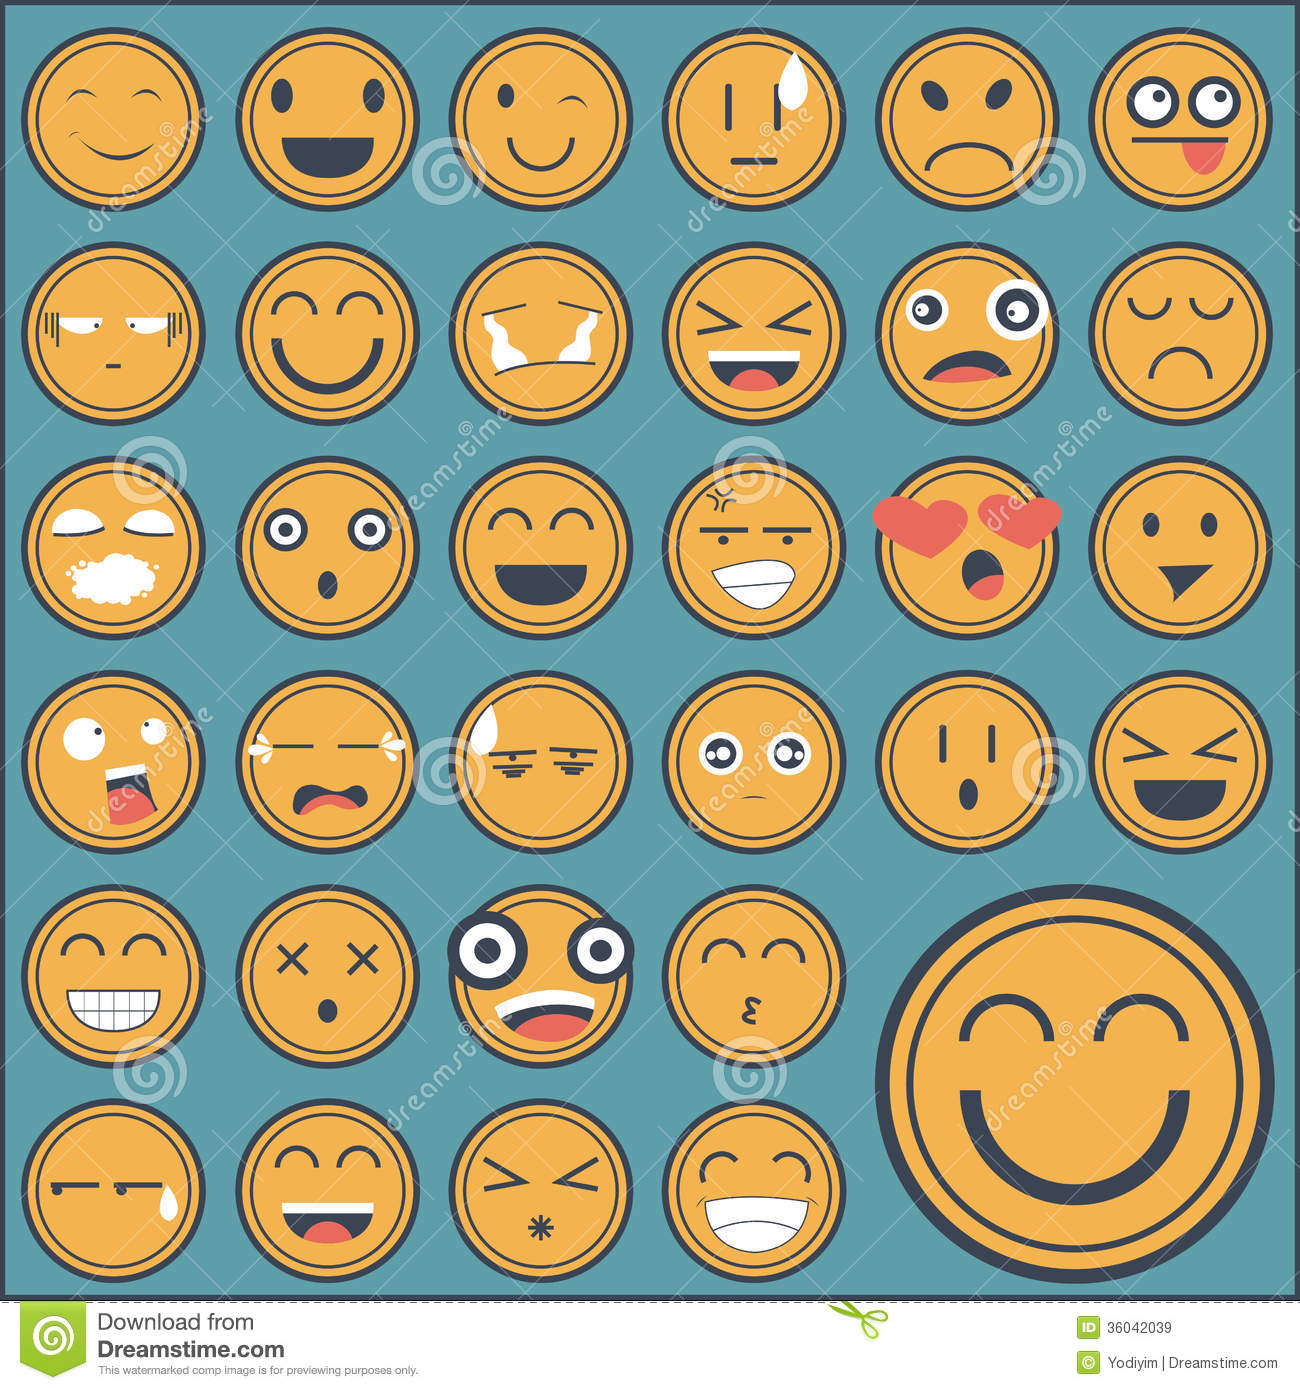 ... Face Sticker Collection Royalty Free Stock Images - Image: 36042039